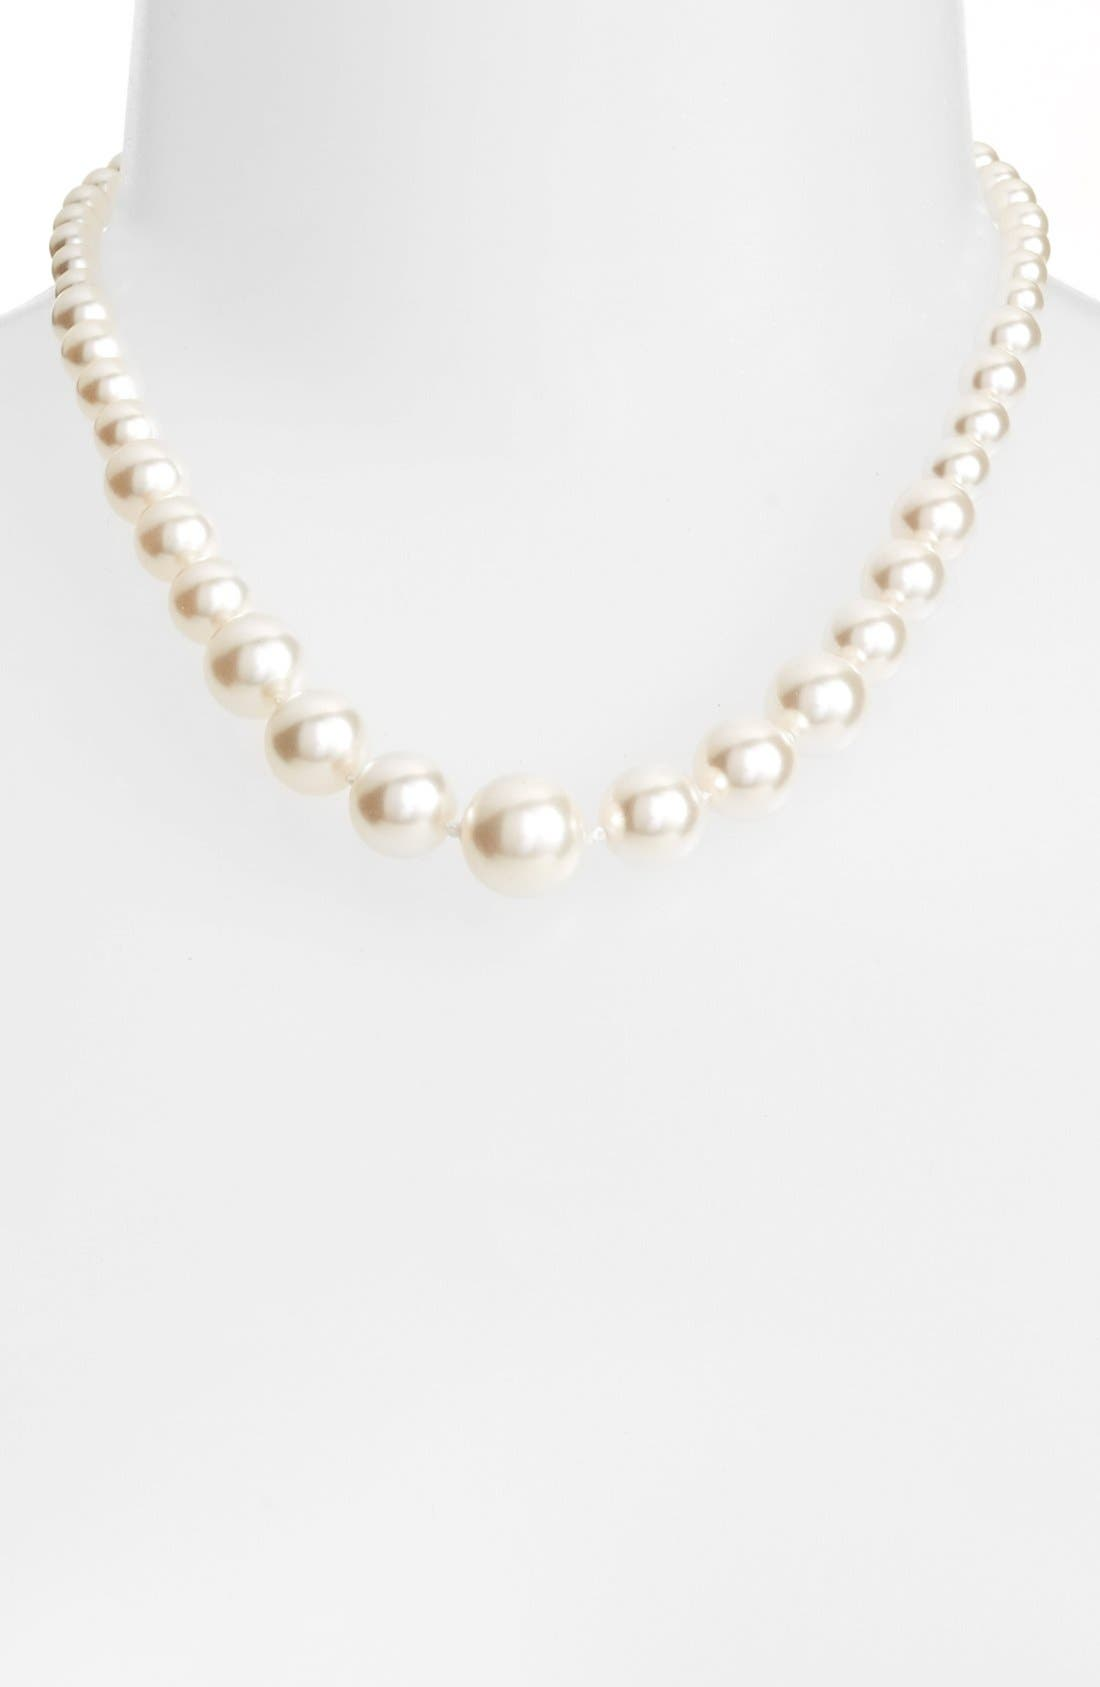 Graduated Imitation Pearl Necklace,                         Main,                         color, Ivory